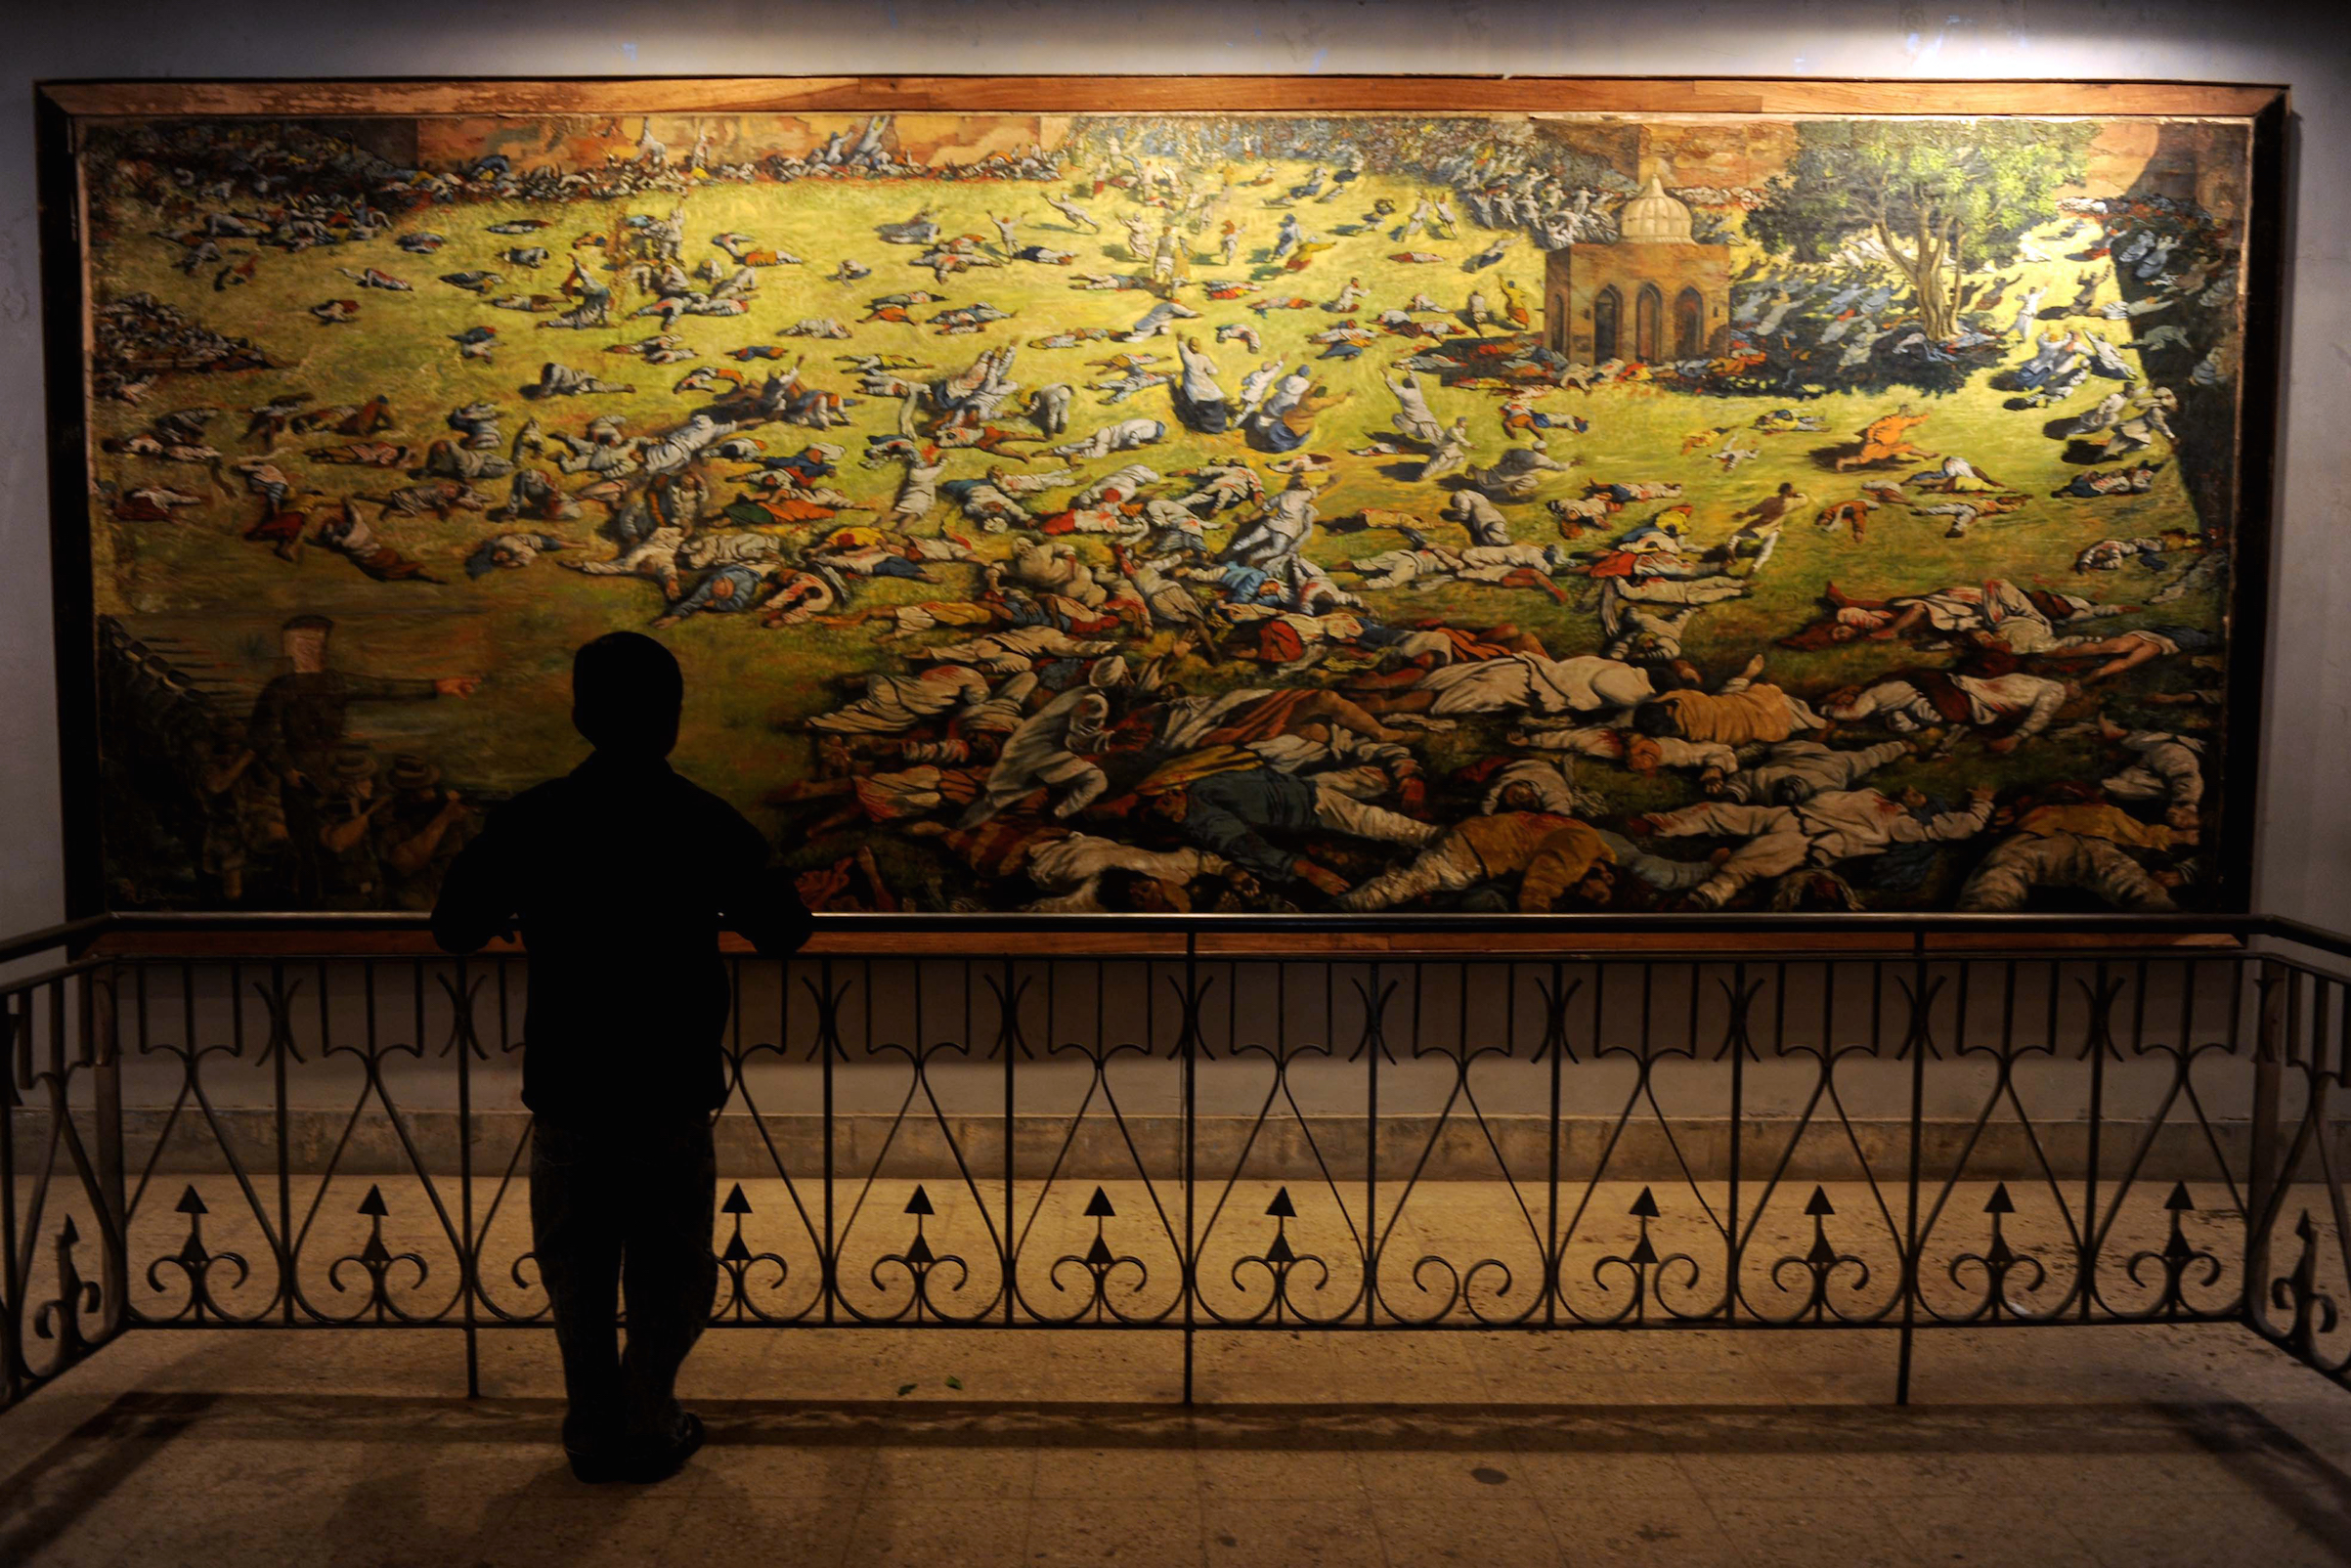 A young visitor looks at a painting depicting the Amritsar Massare at Jallianwala Bagh in Amritsar on Feb. 4, 2010.